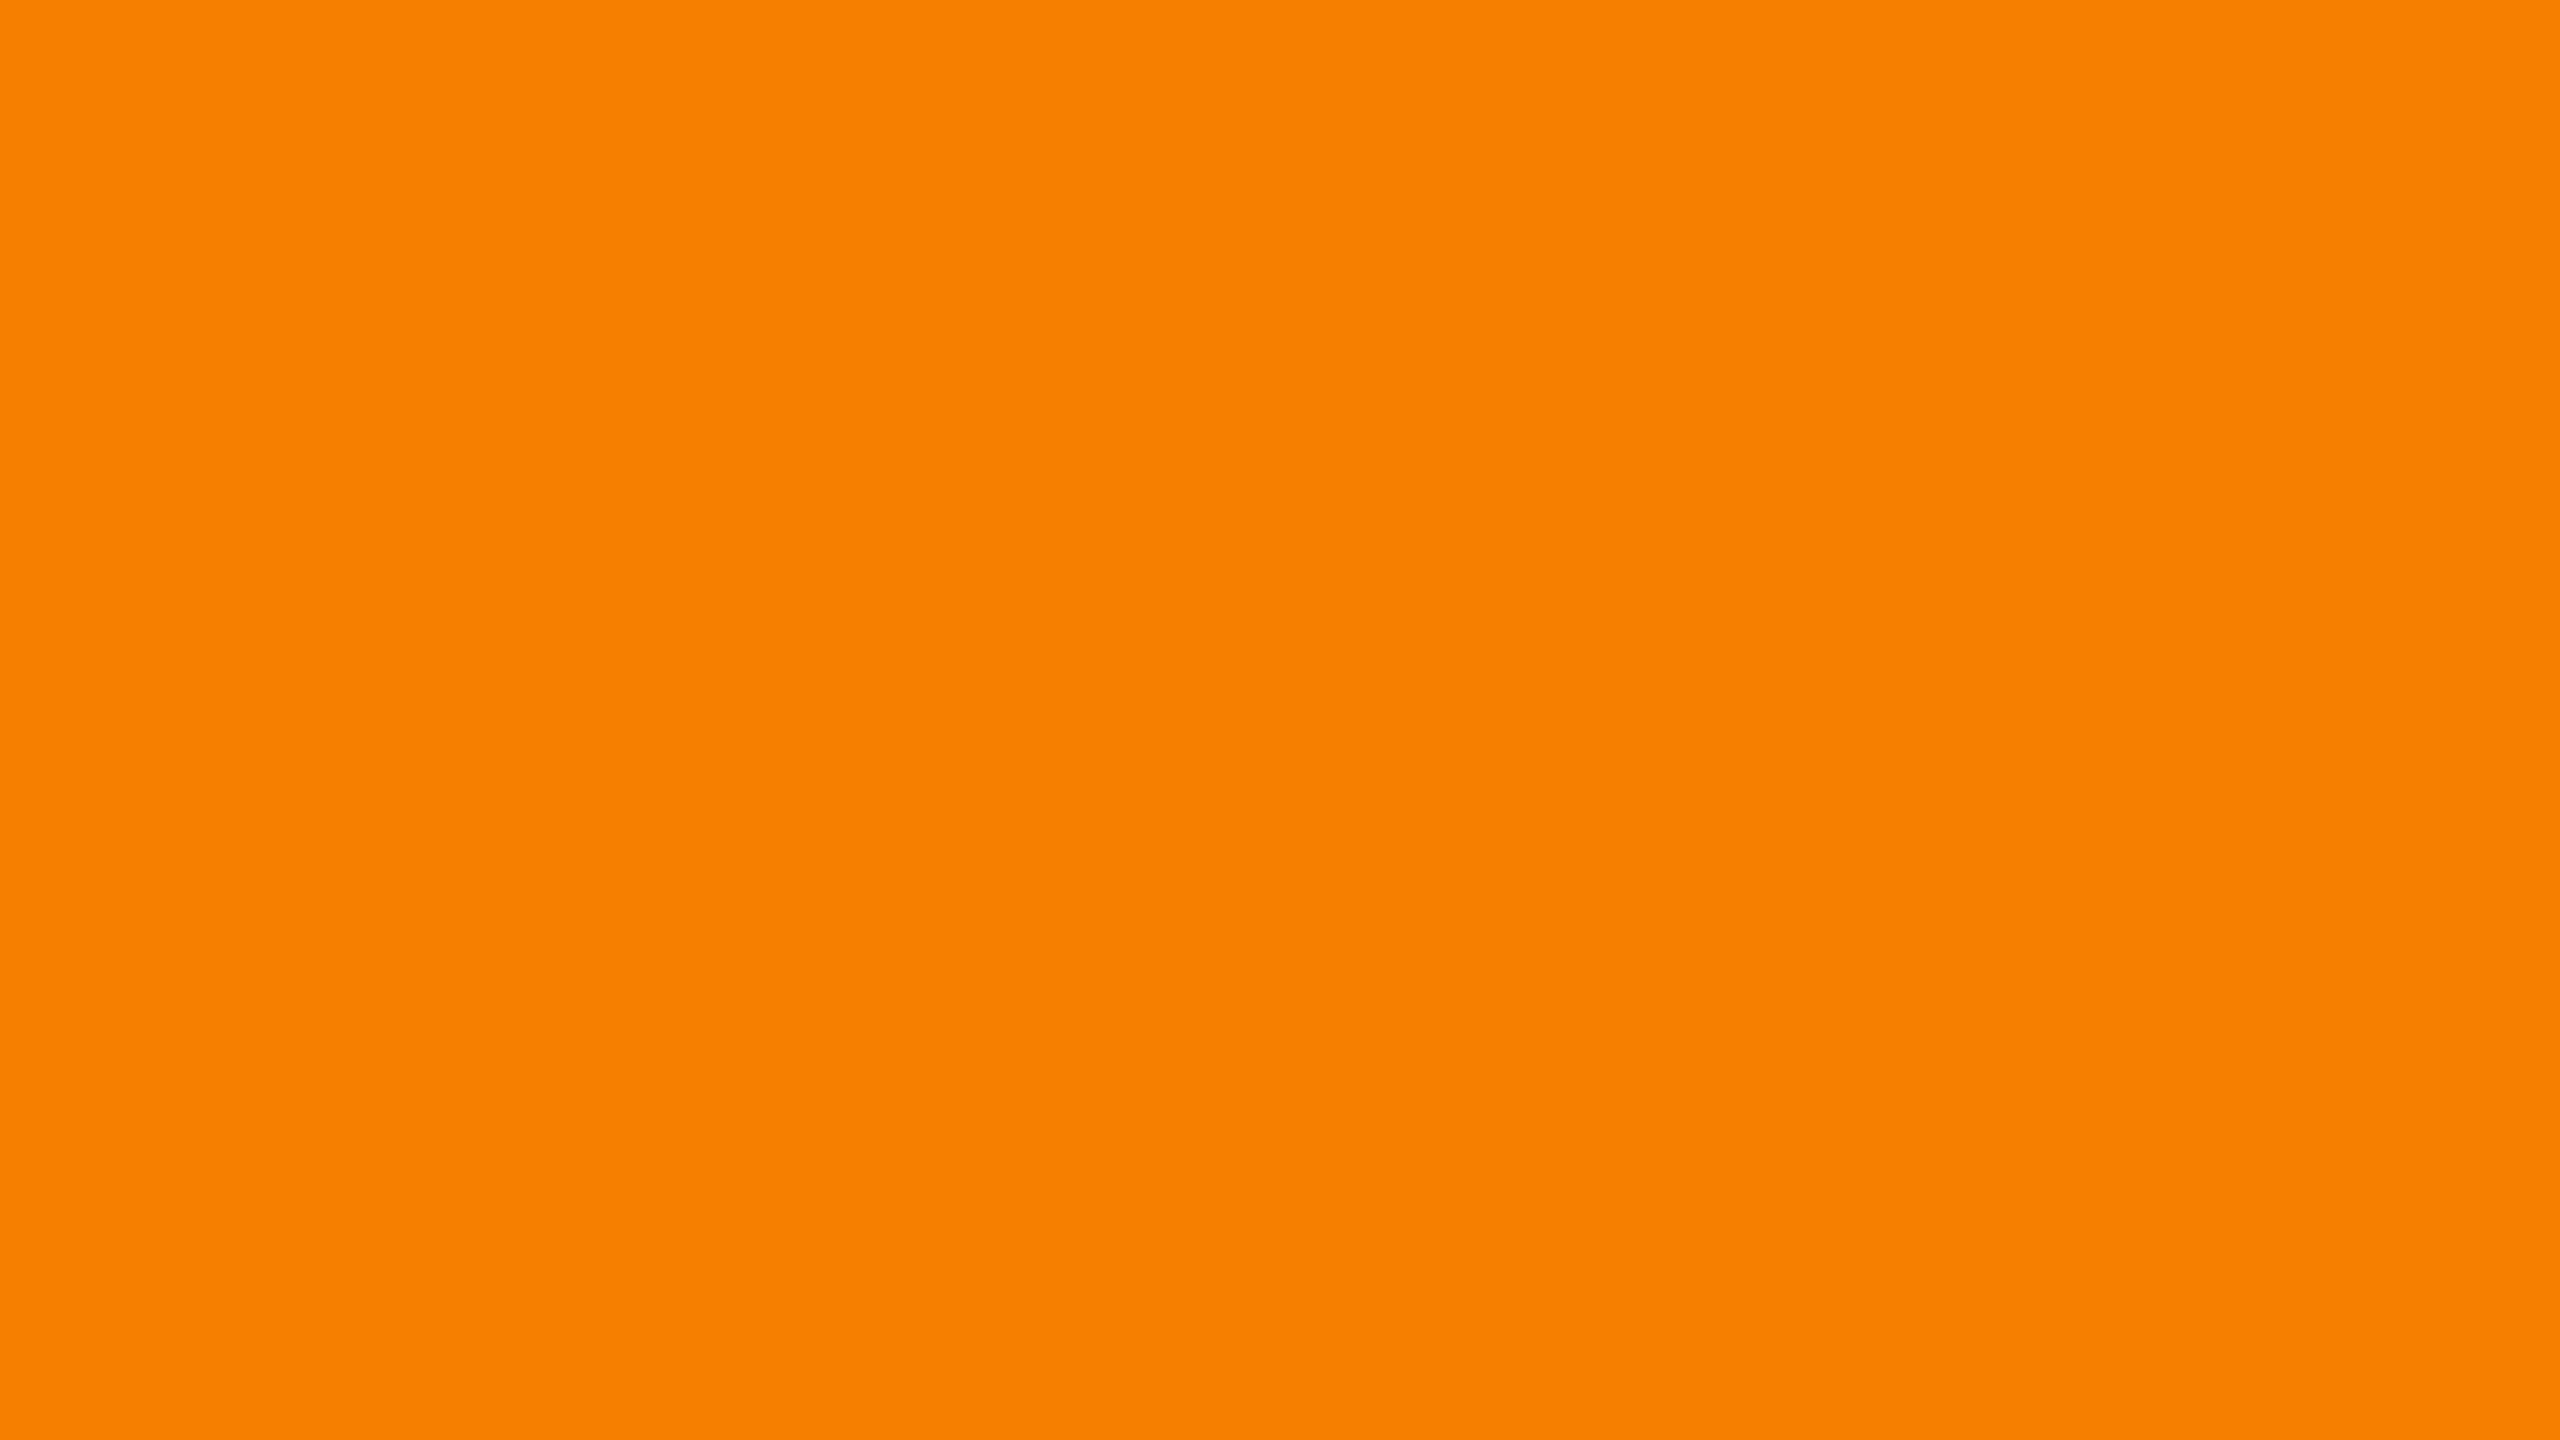 2560x1440 University Of Tennessee Orange Solid Color Background